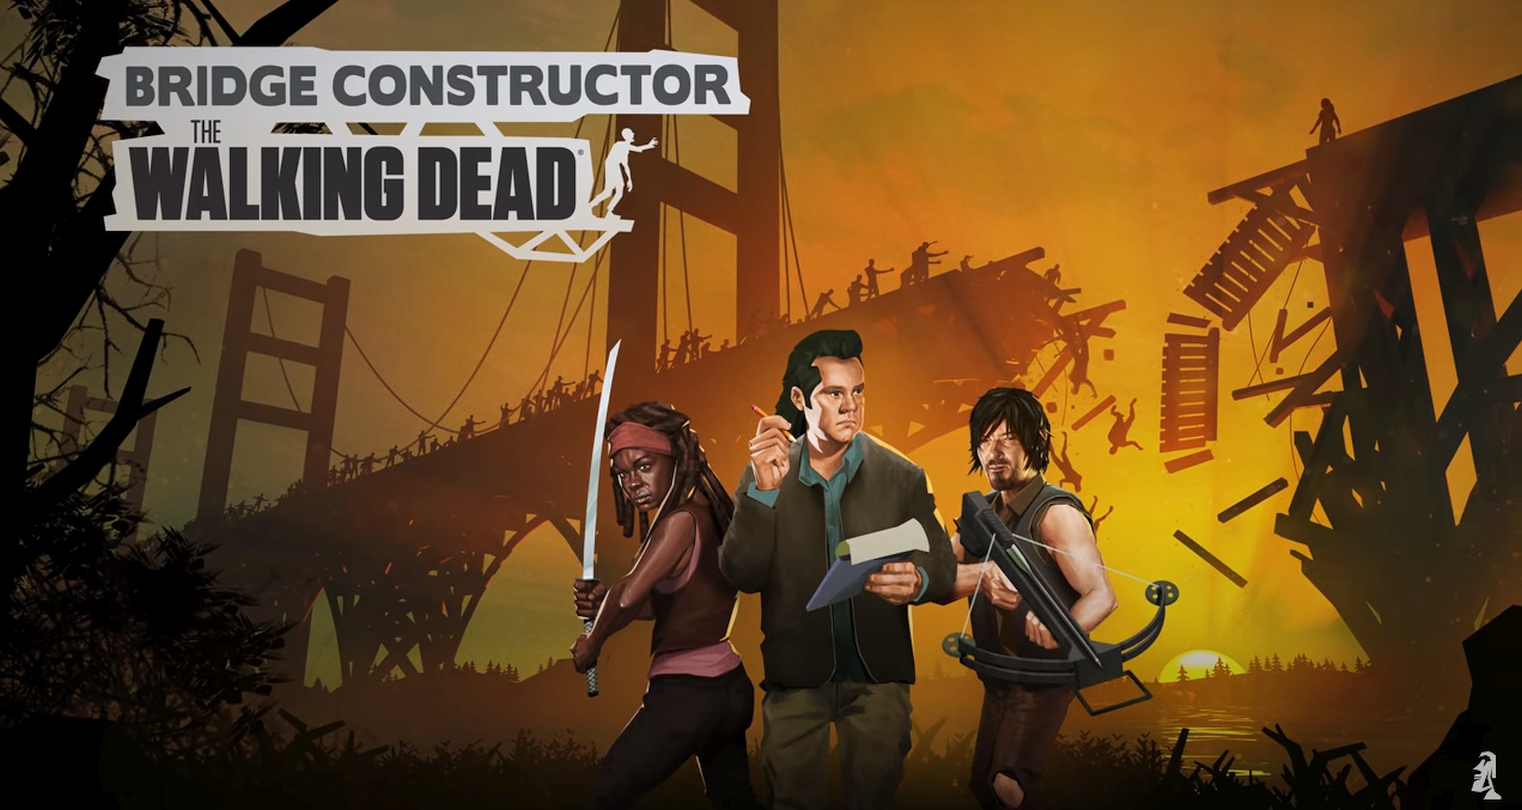 Early Previews Of Bridge Constructor: The Walking Dead Now Available Ahead Of Launch Later This Year